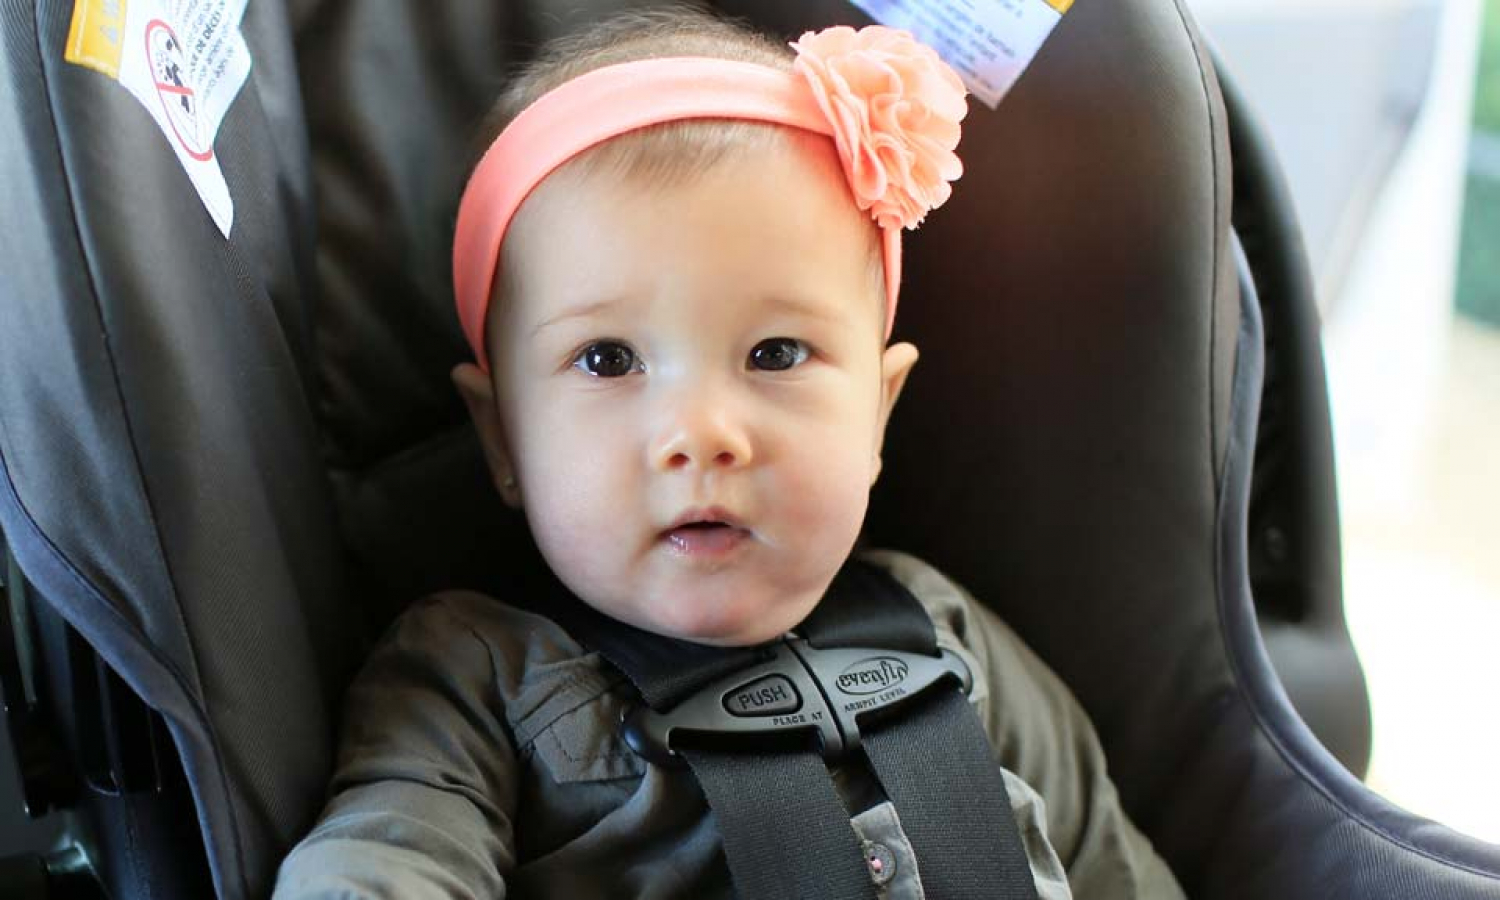 Child Car Seat Usa Buckling Down On Car Seats For National Safety Month